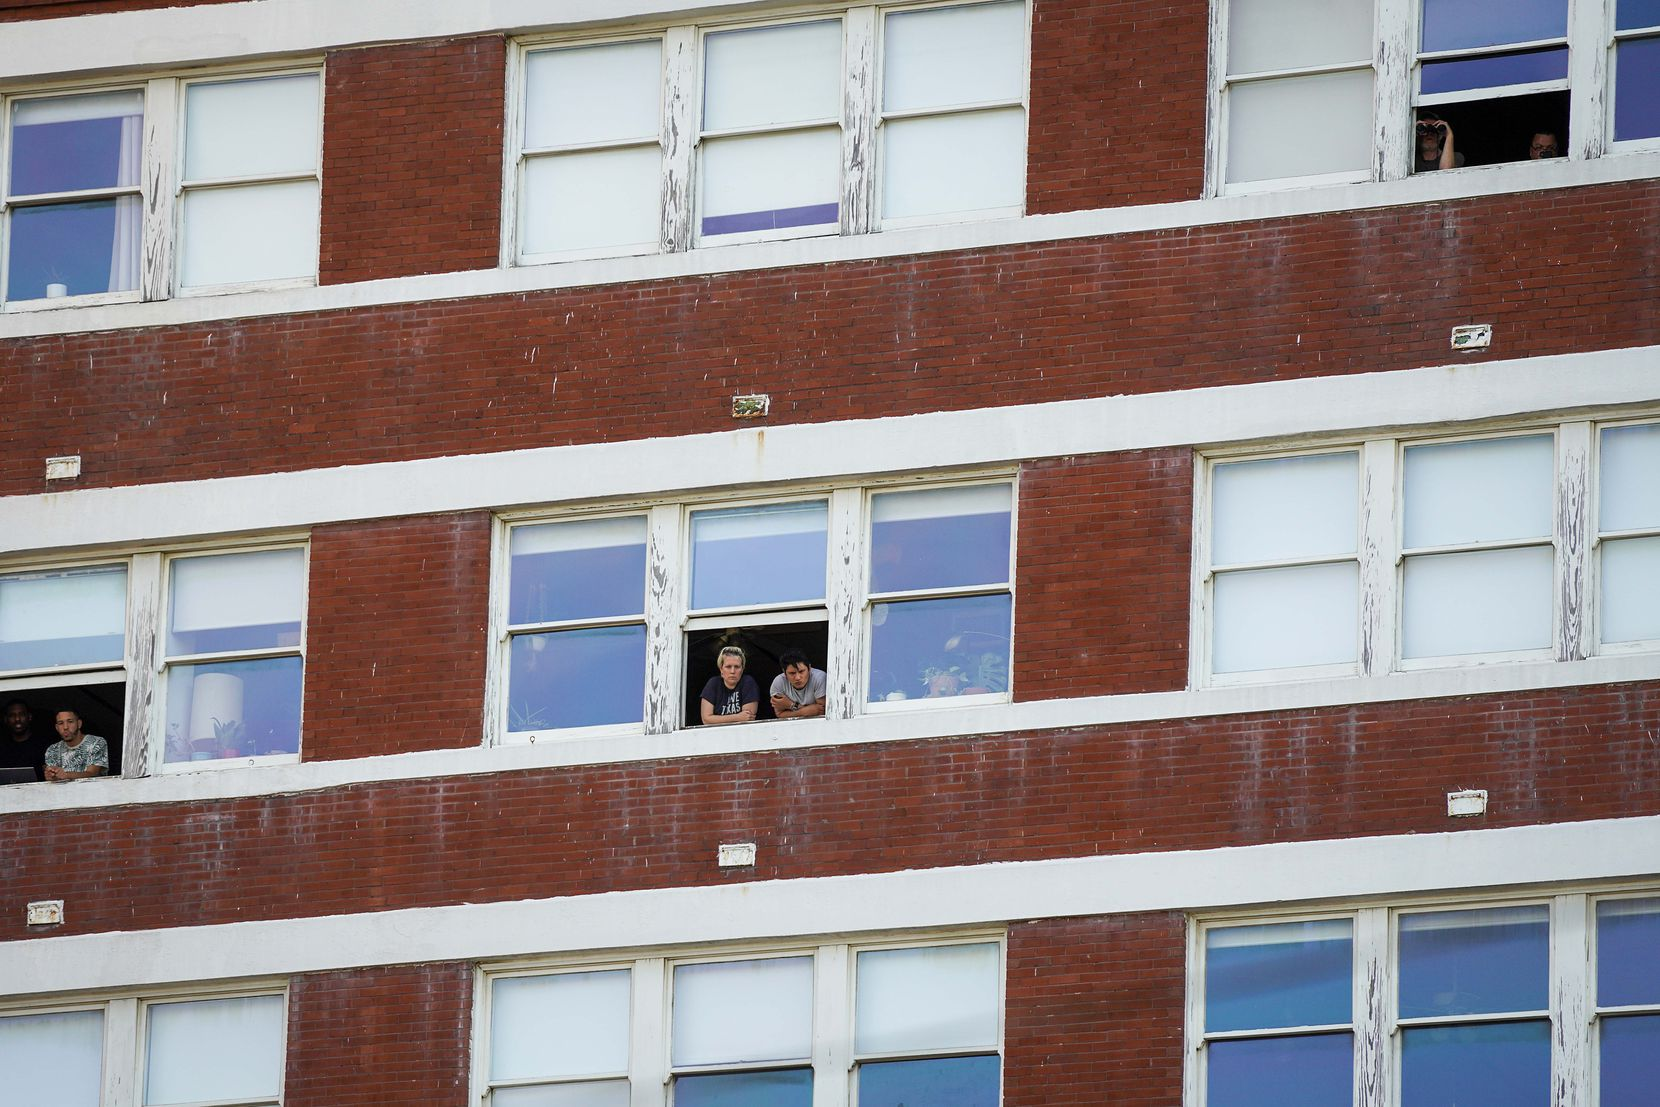 People watch from the windows of South Side on Lamar during protest against police brutality at the Dallas Police Headquarters on Friday, May 29, 2020, in Dallas.